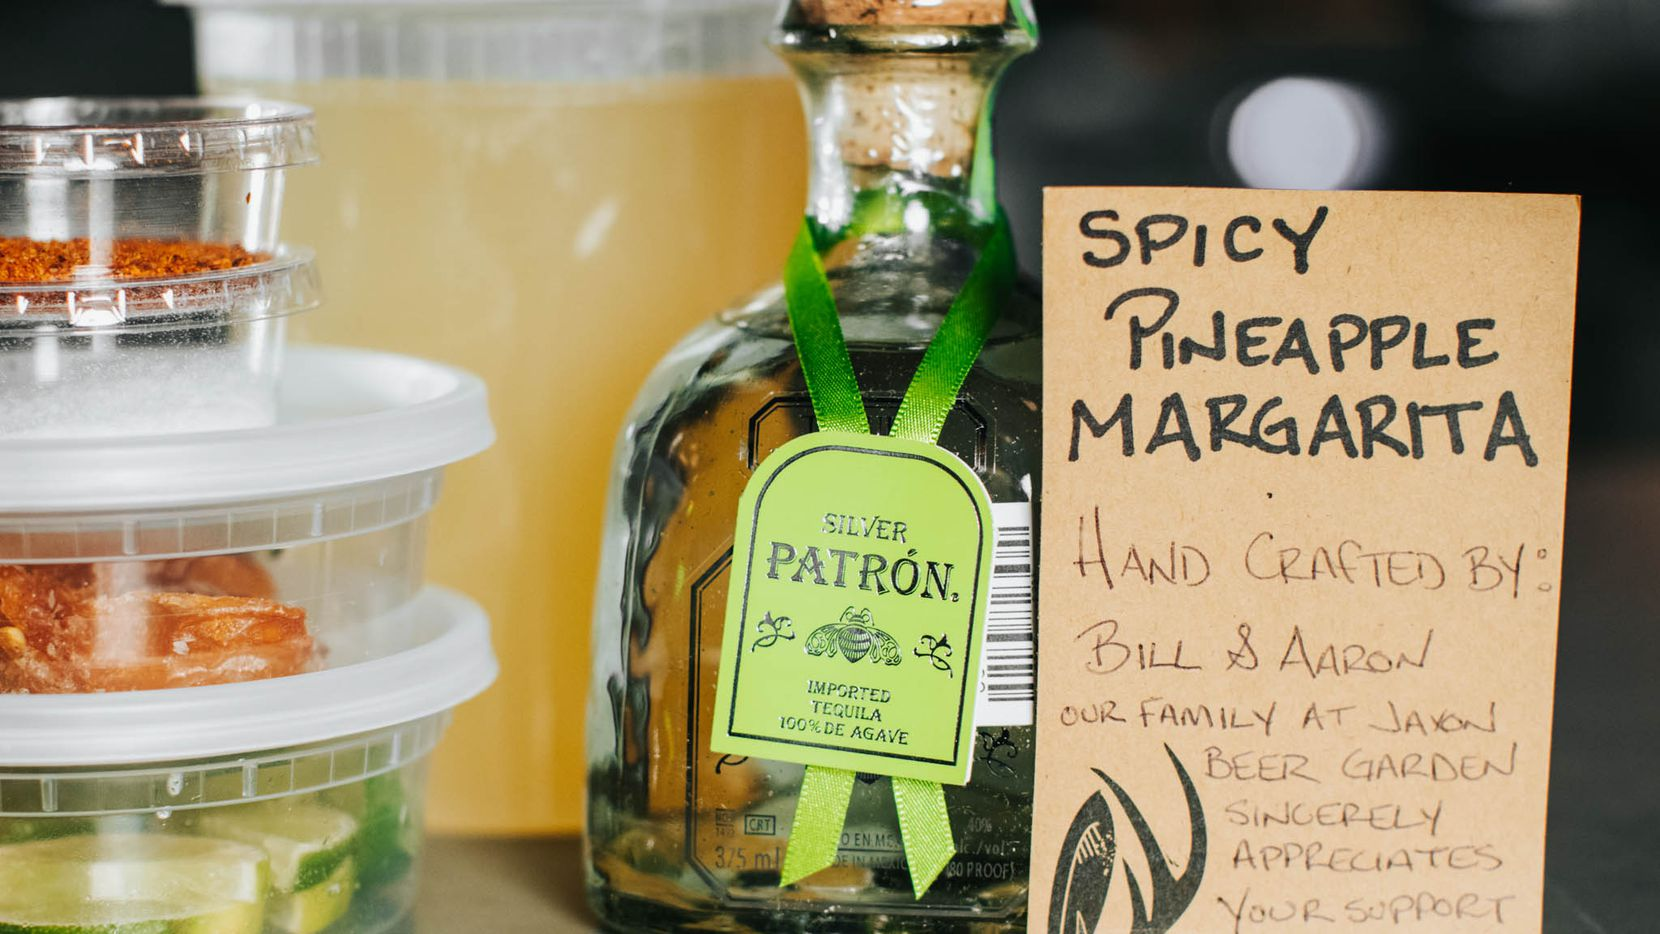 Spicy Pineapple Margarita cocktail kit from Jaxon Beer Garden